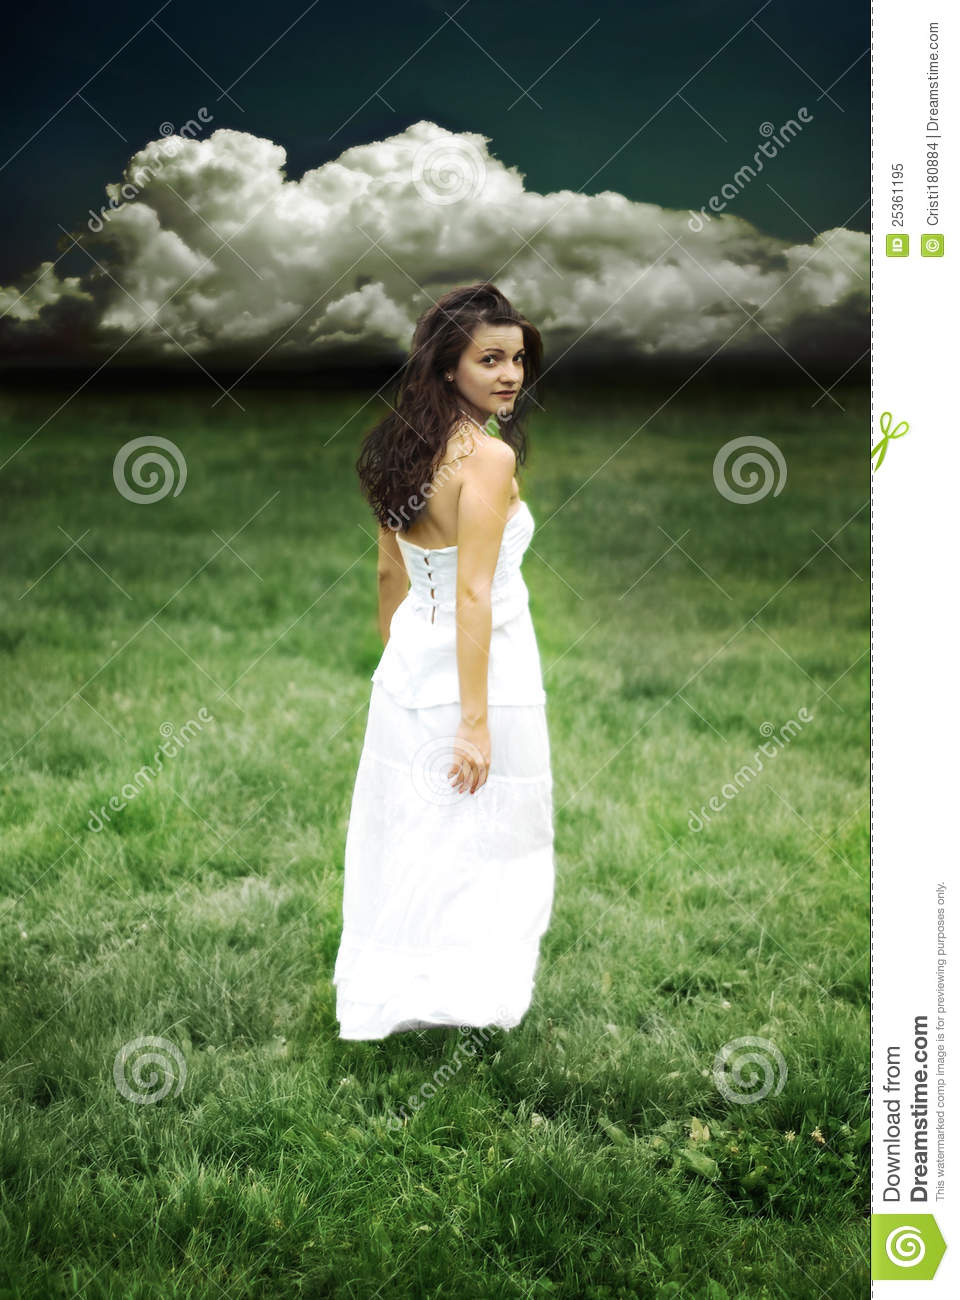 Girl Looking Back Royalty Free Stock Photo - Image: 25361195